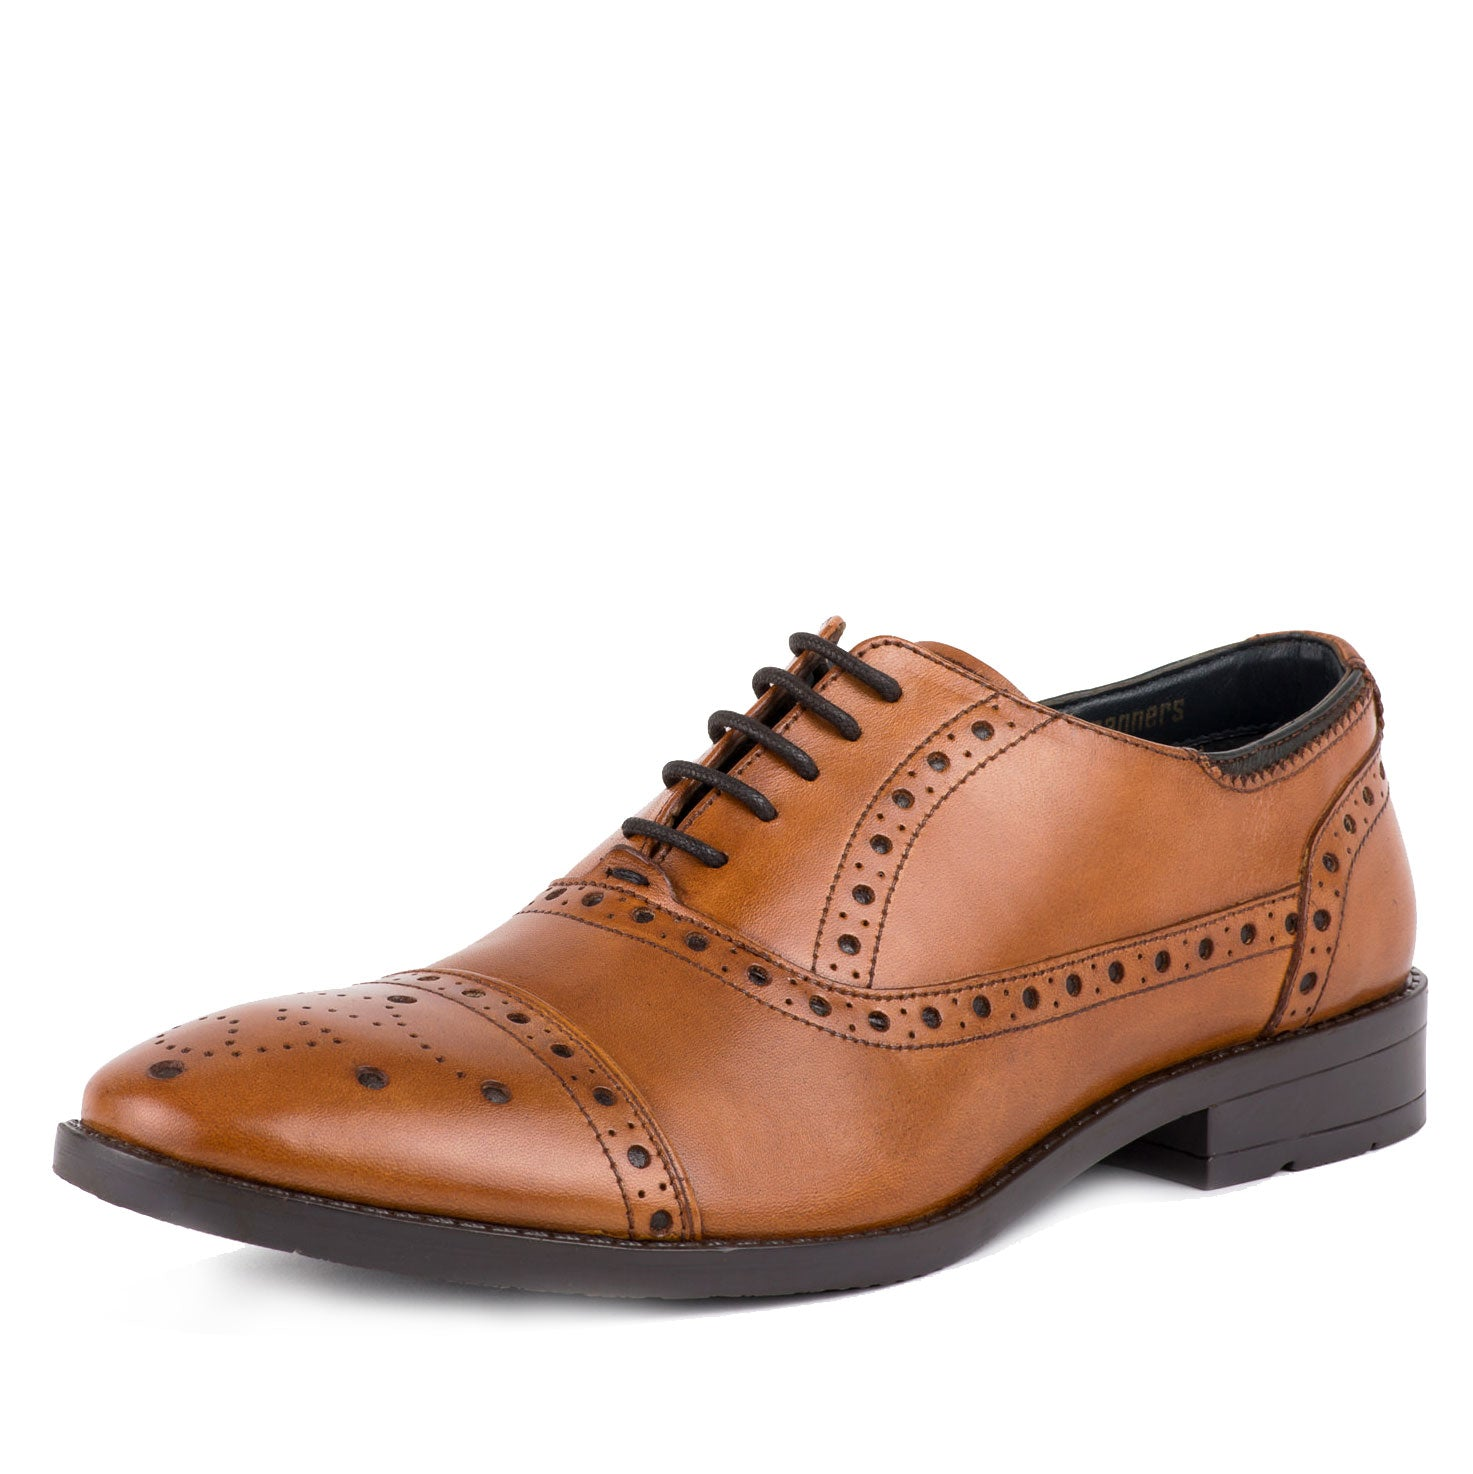 Tan Leather Brogue Shoe by Goodwin Smith